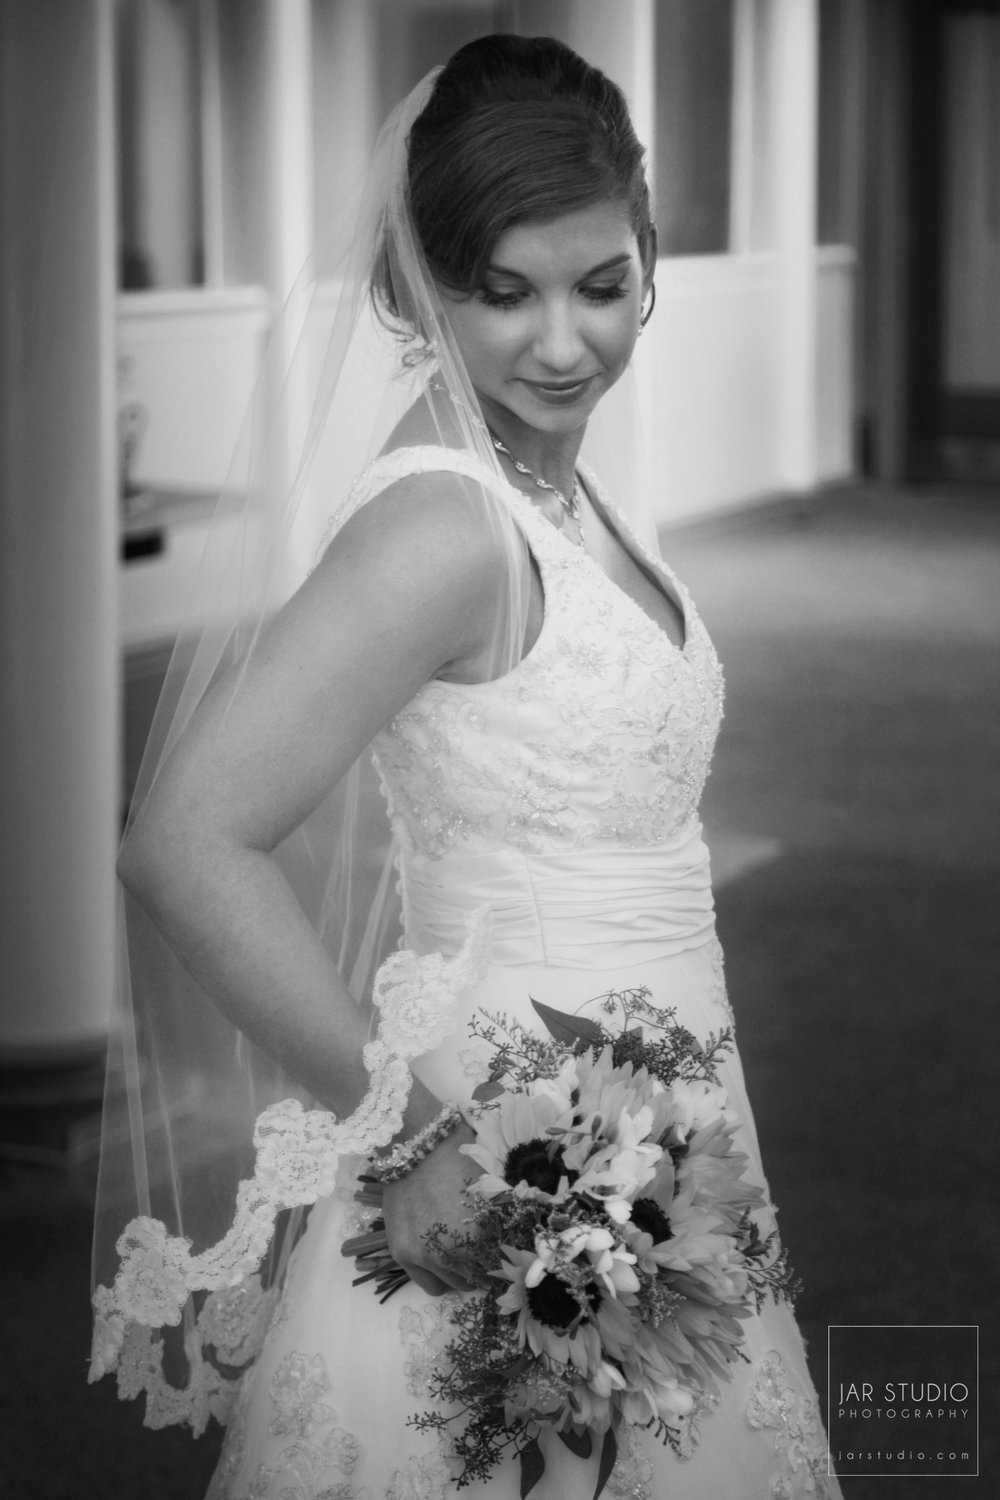 08-bride-sunflowers-bouquet-jarstudio-photography.JPG